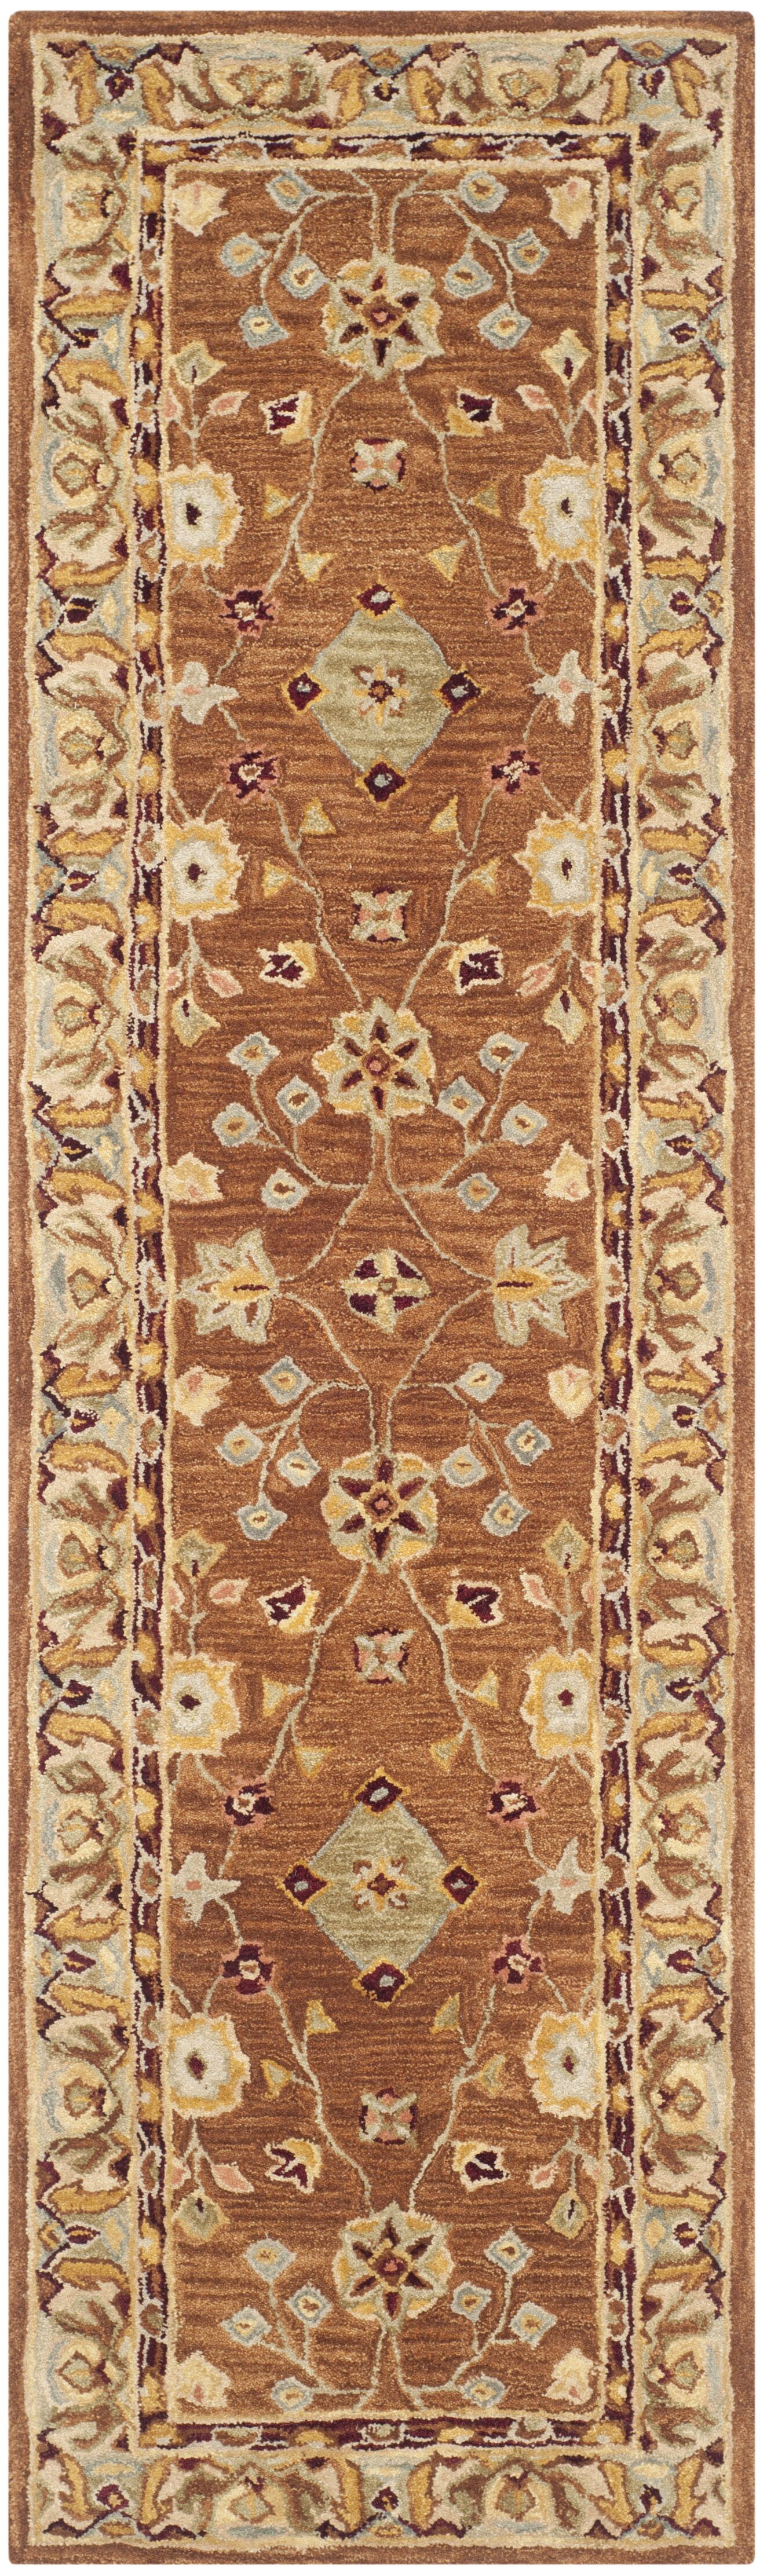 Anatolia Tan/Ivory Area Rug Rug Size: Runner 2'3